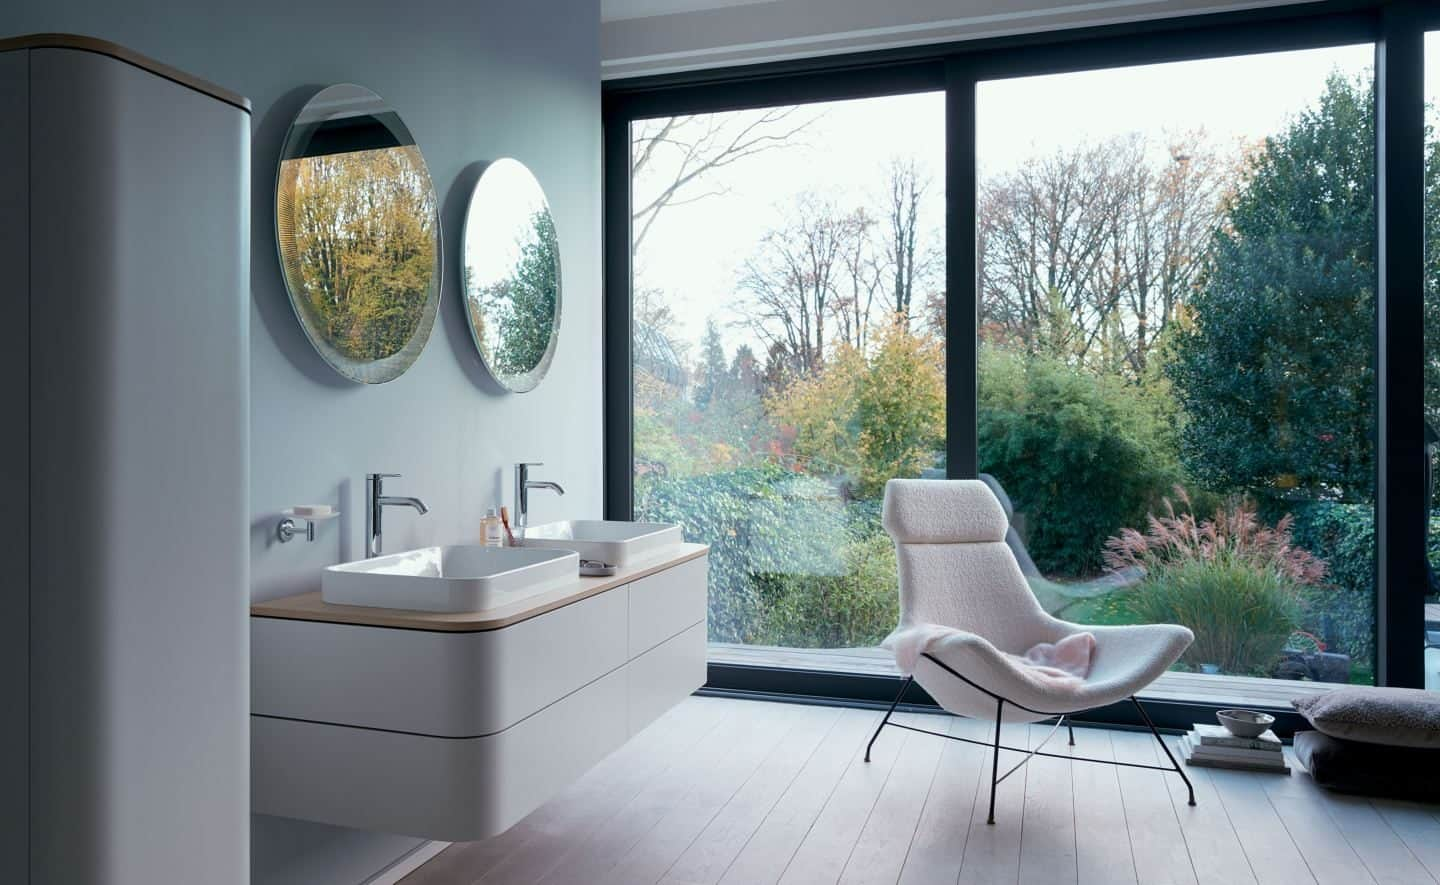 Happy D 2 Plus bathrrom collection from Luxury bathroom brand Duravit